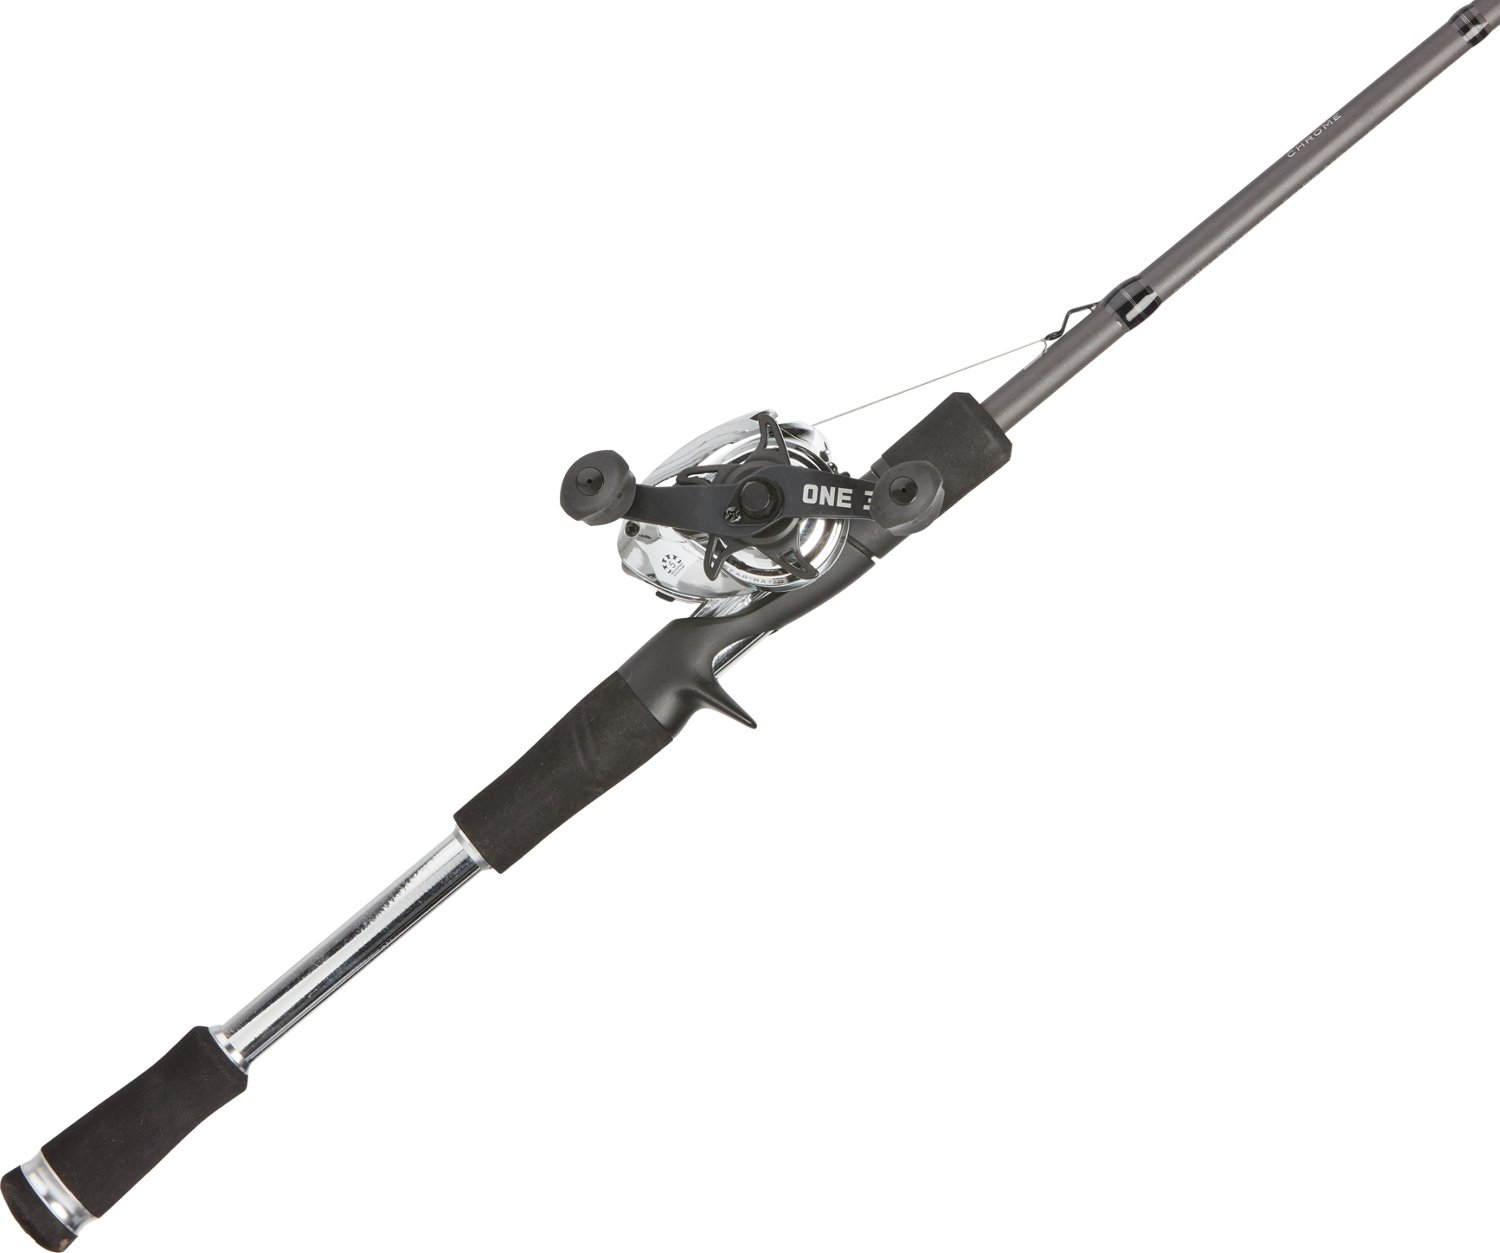 13 Fishing Fate Chrome Origin 7 ft 1 in MH Freshwater Casting Rod and Reel  Combo